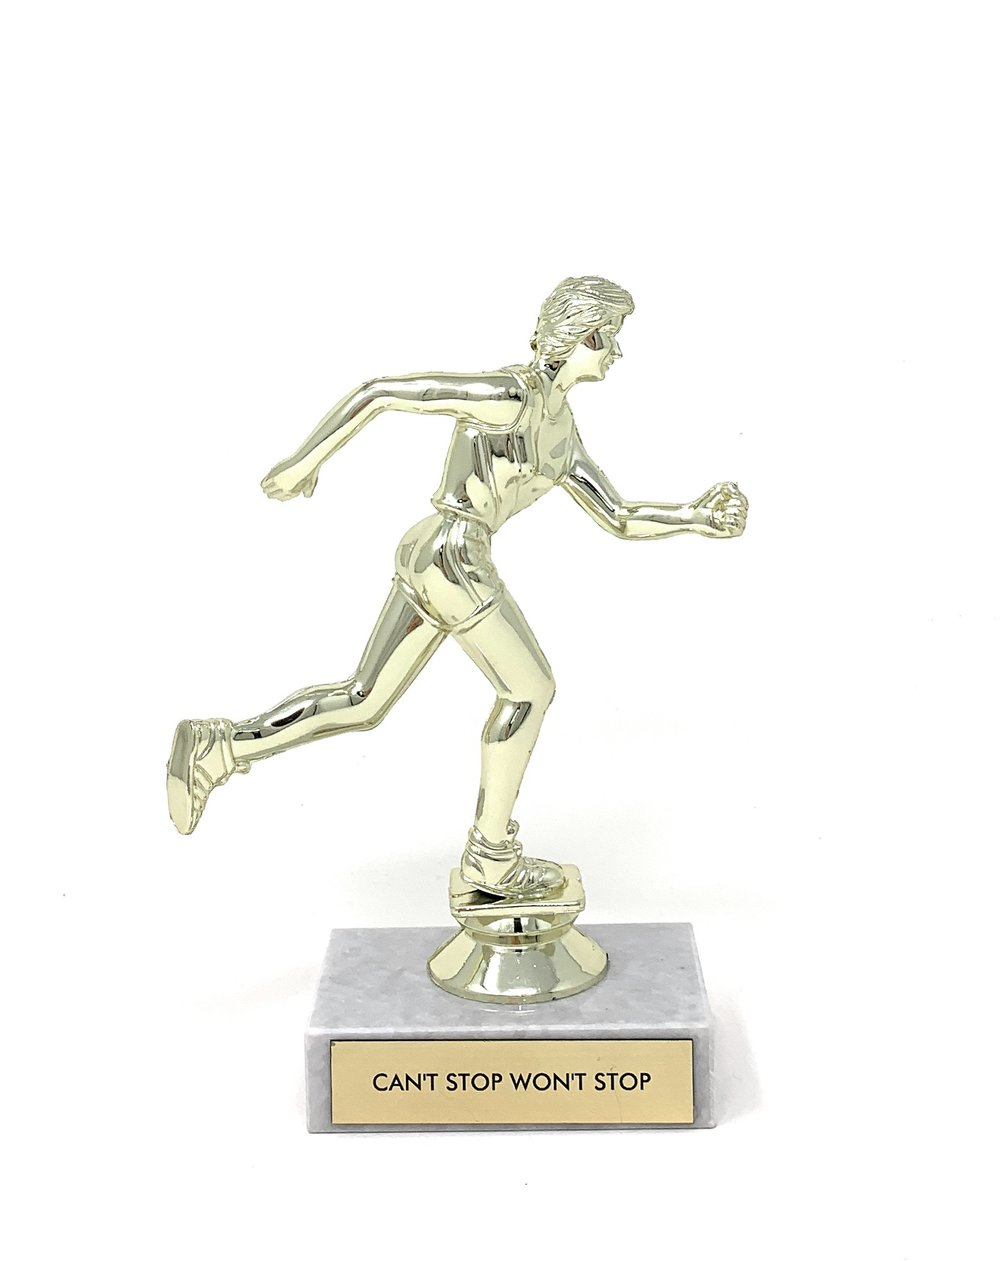 CAN'T STOP WON'T STOP - $19.99 WITH FREE SHIPPING